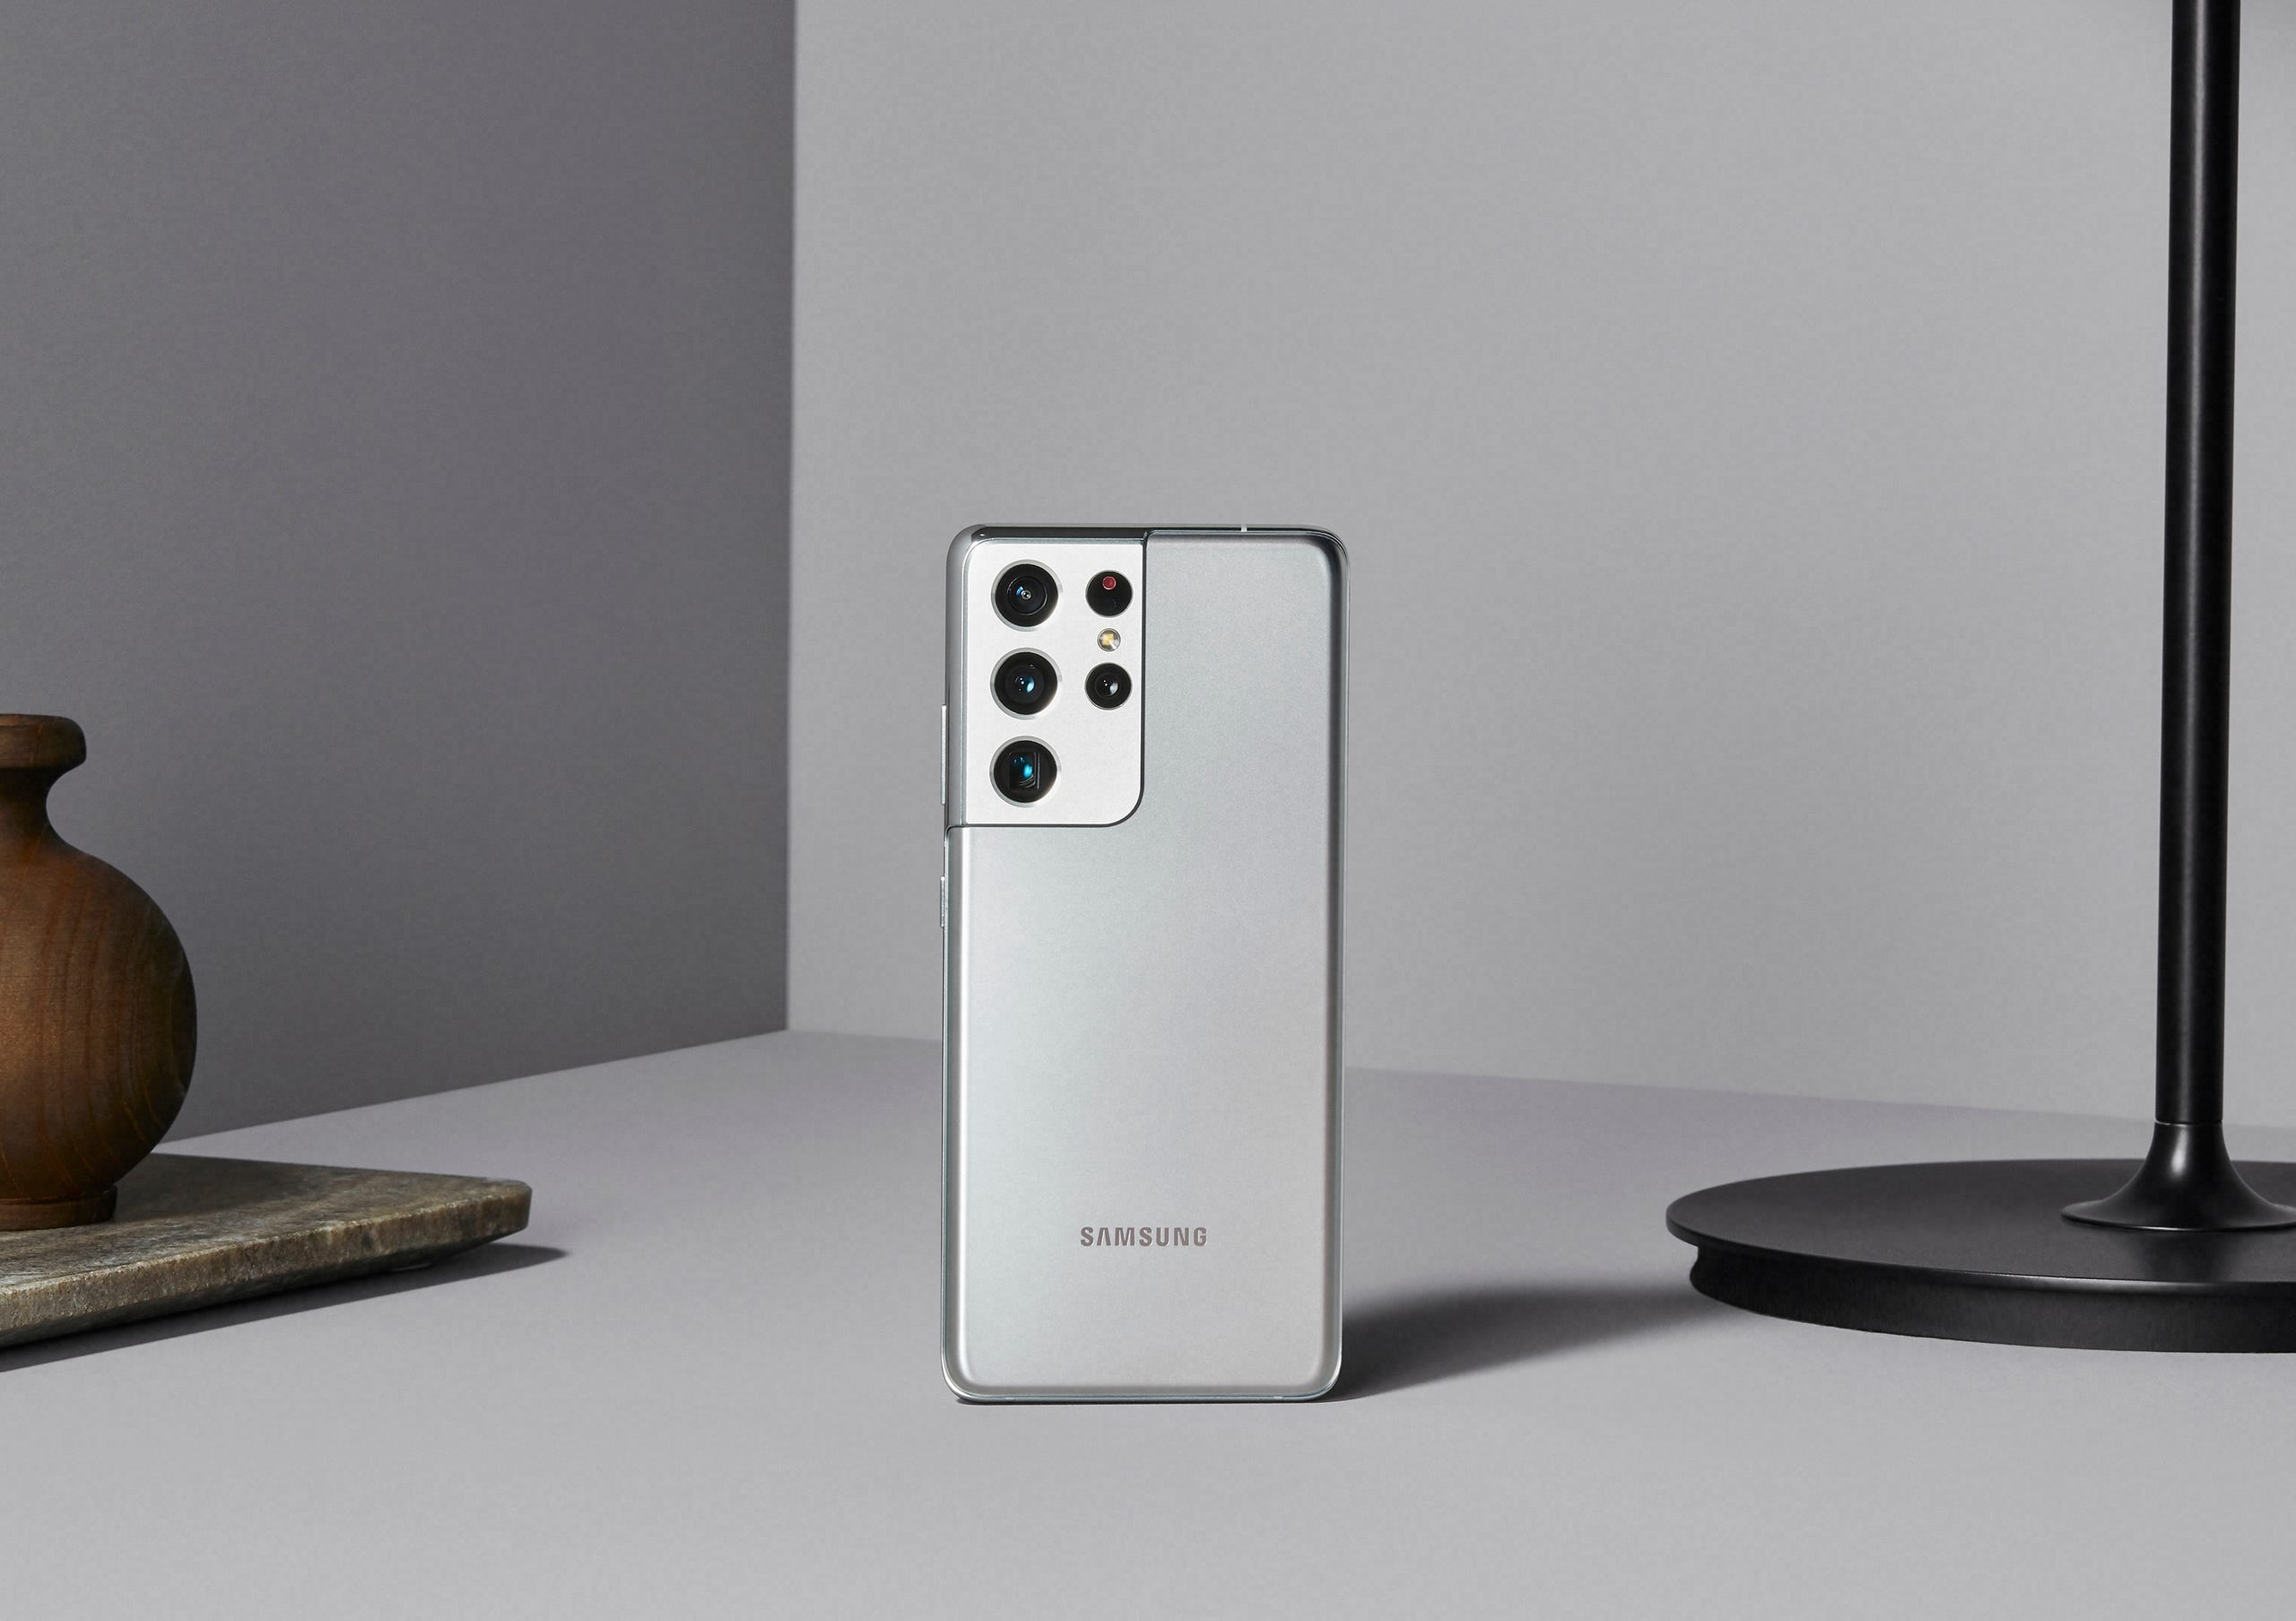 The Samsung Galaxy S21 Ultra has five cameras: four on the rear, including a dual-telephoto lens, and one in front.